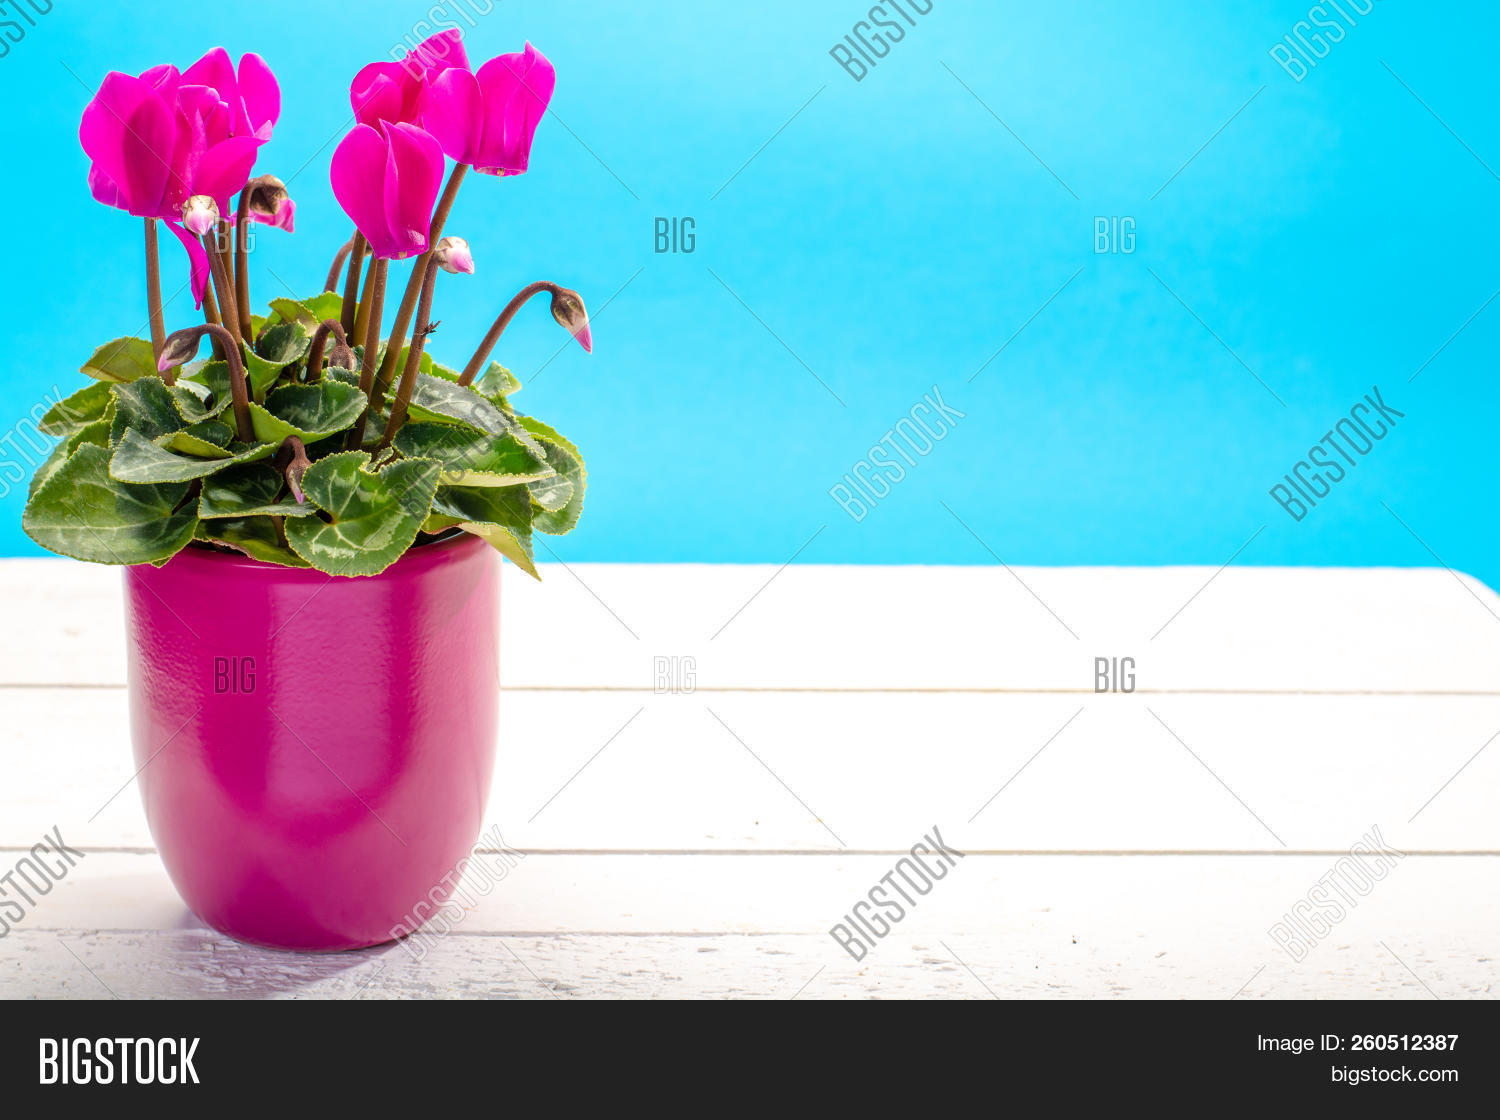 One Pink Cyclamen Plant With Flowers In Pink Pot On Trendy Blue